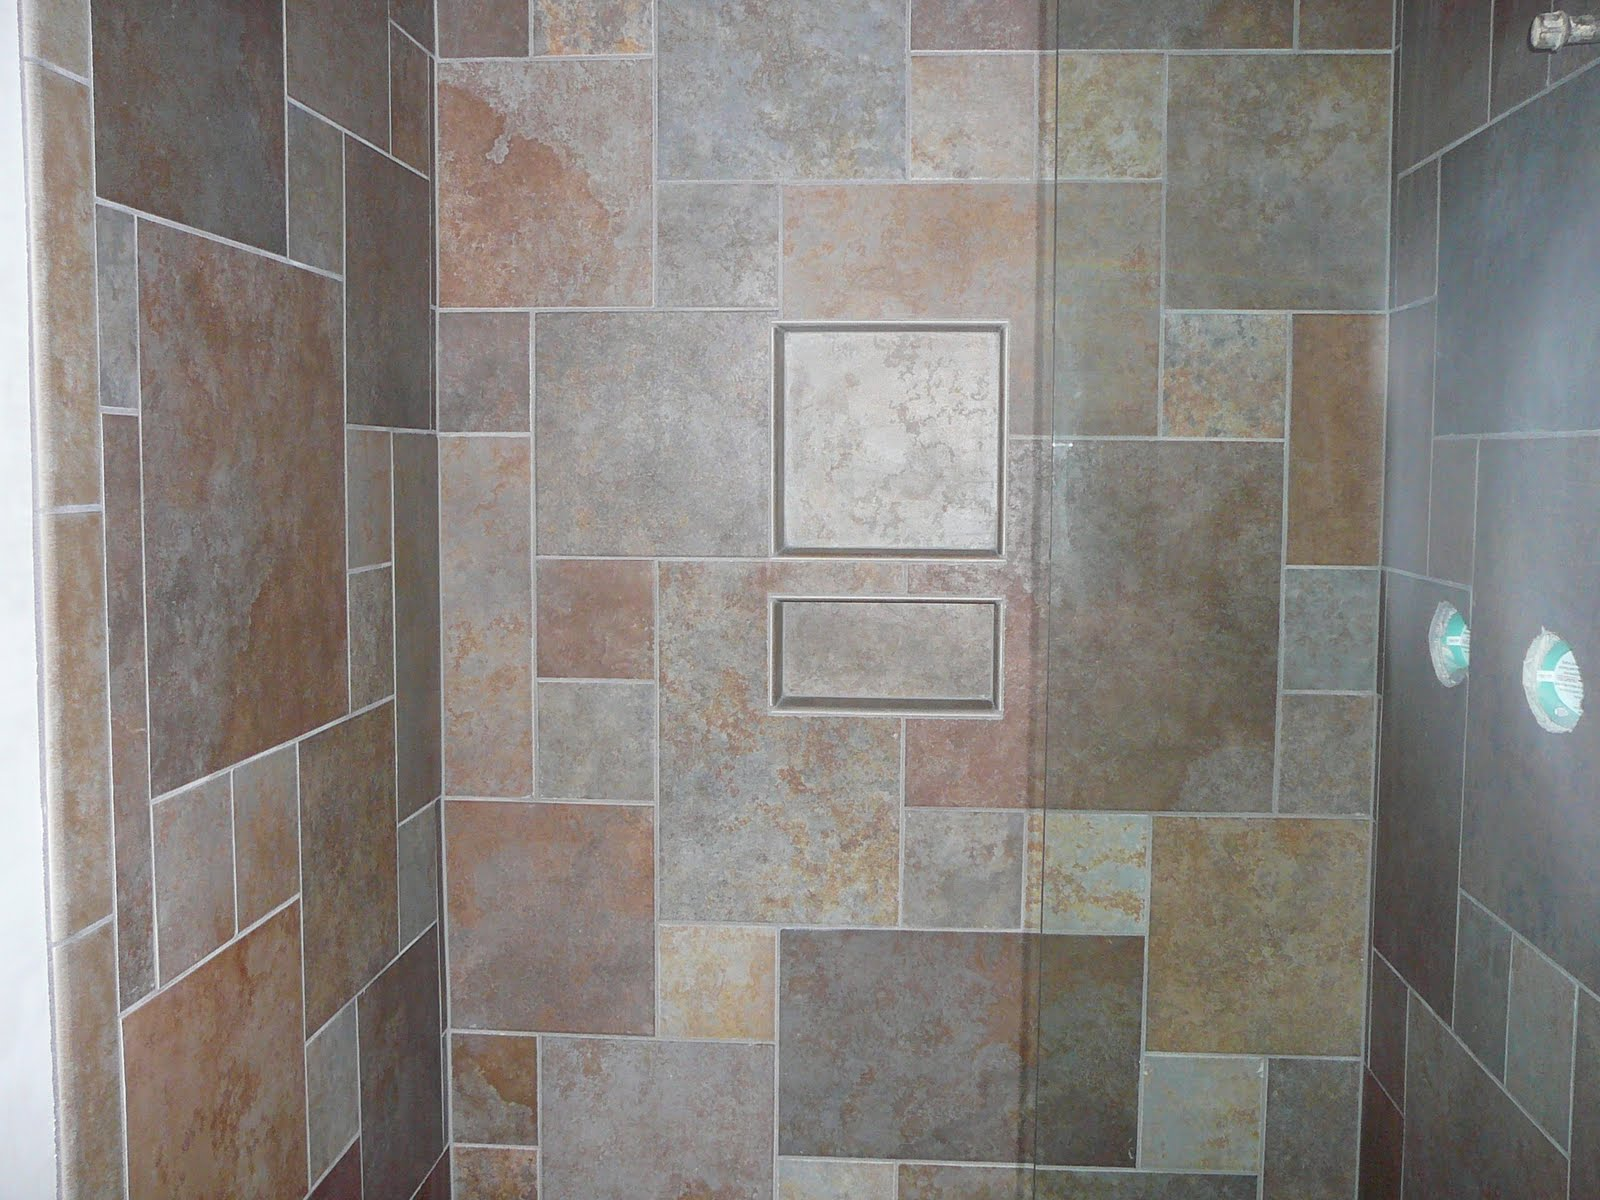 Knapp tile and flooring inc custom shower Different design and colors of tiles